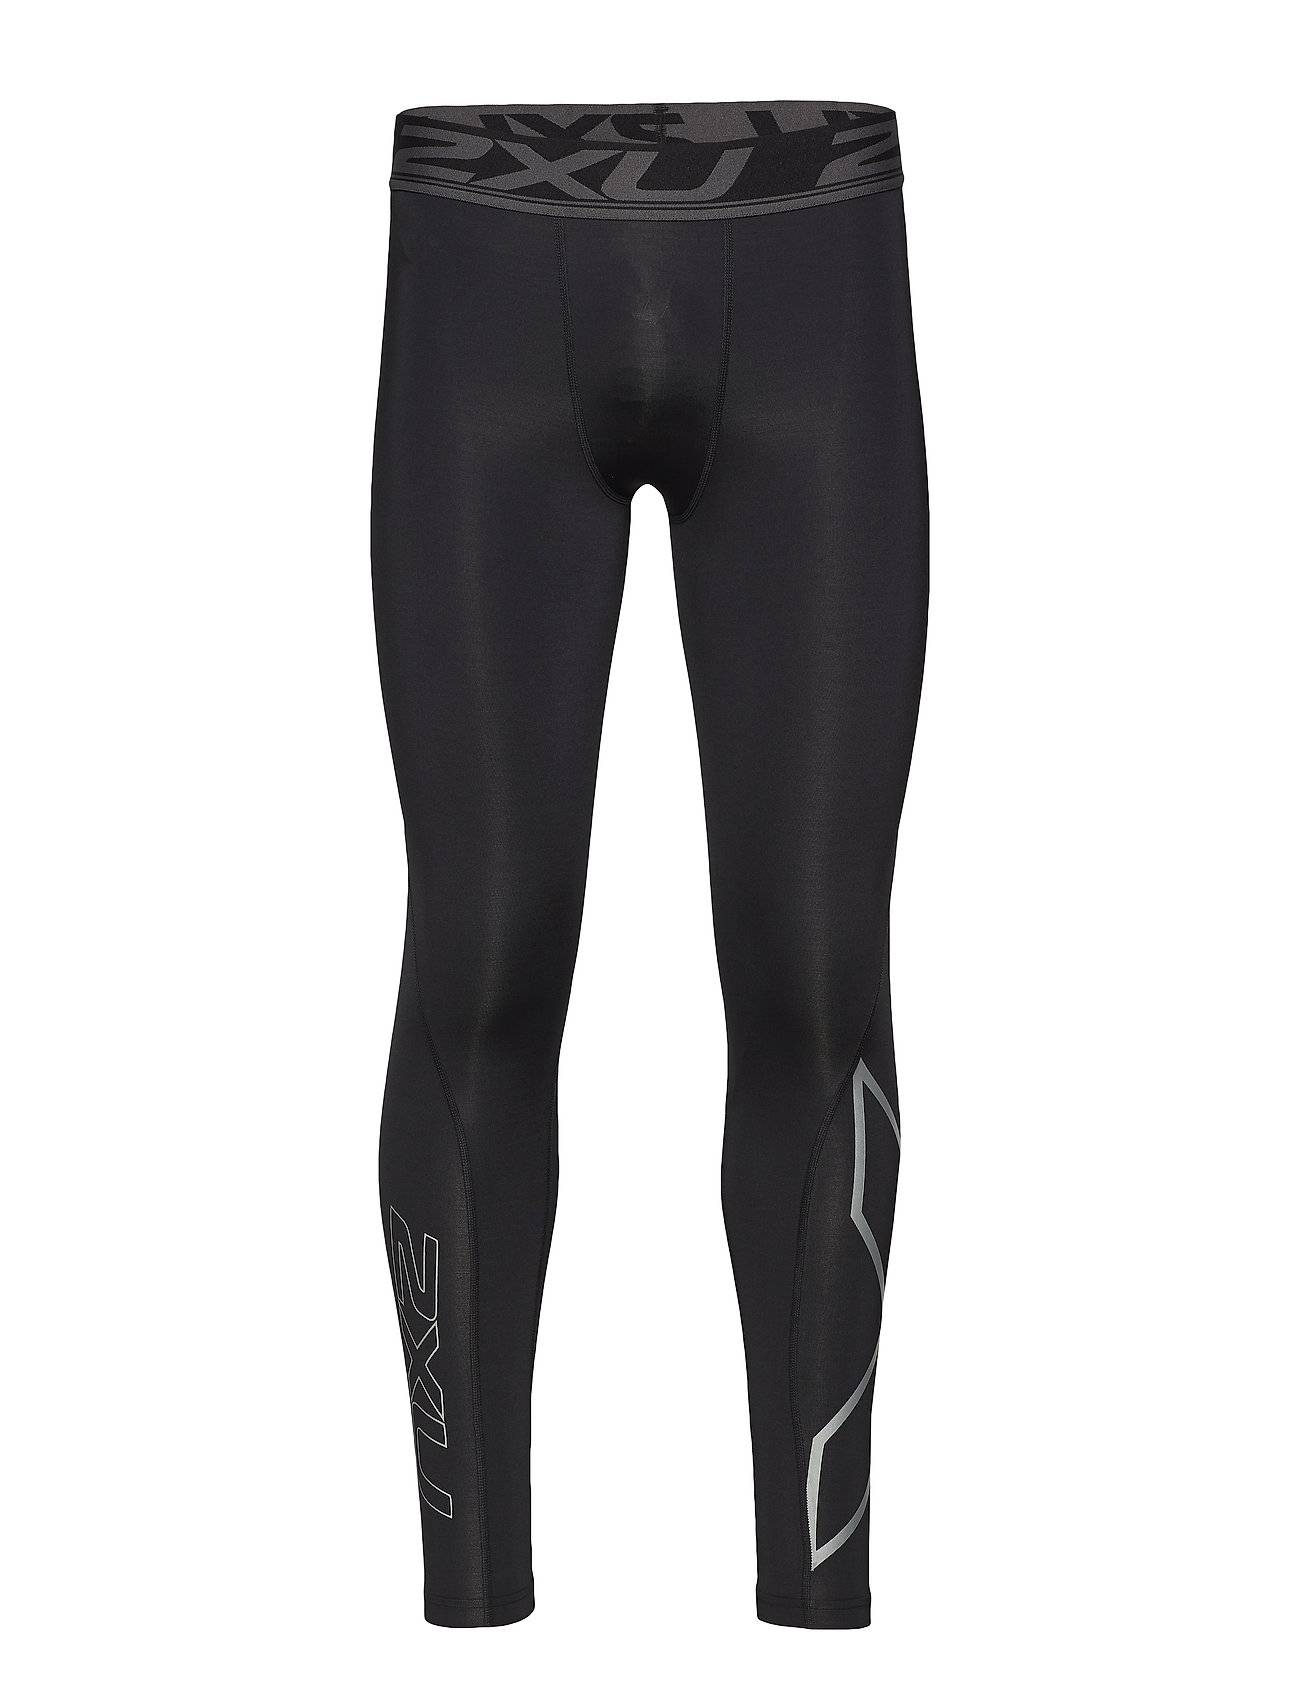 2XU Accelerate Comp Tights